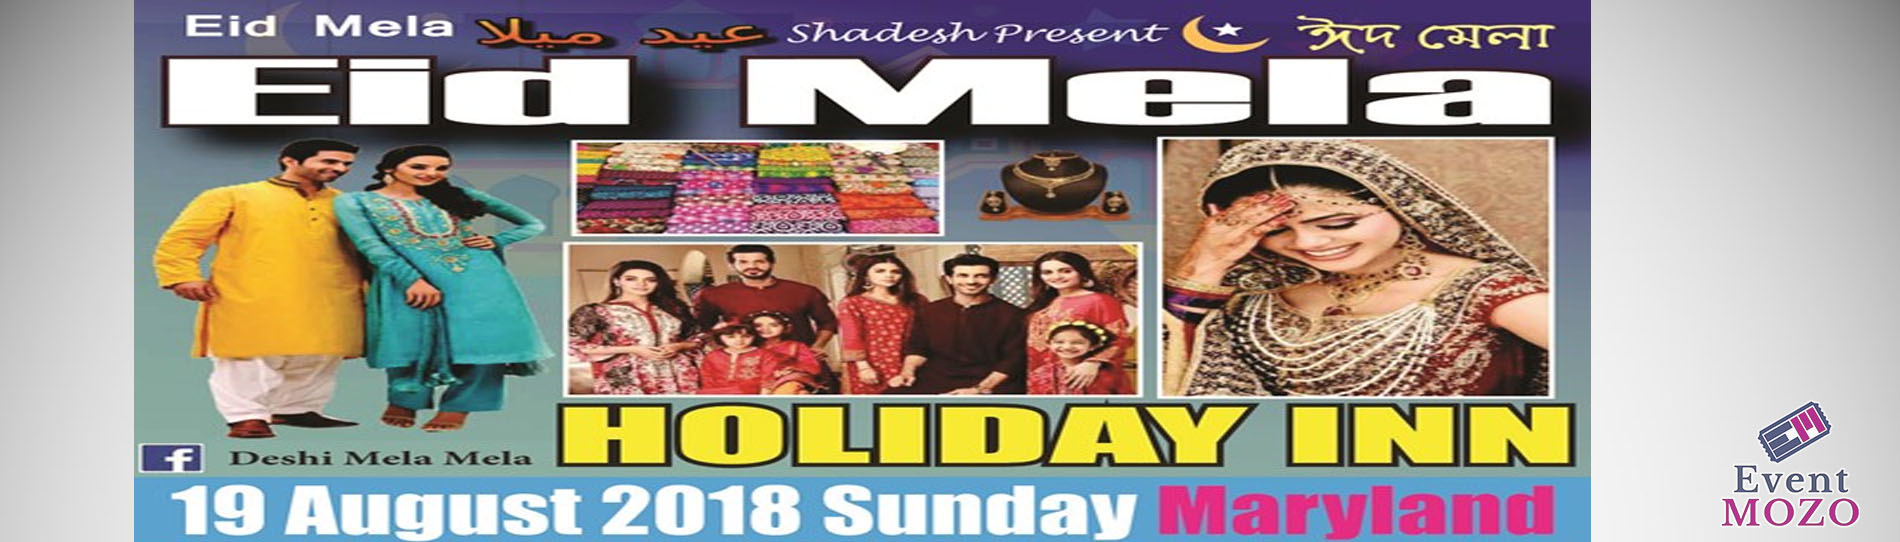 EventMozo EID MELA 19 August 2018 at Gaithersburg Holiday Inn MARYLAND